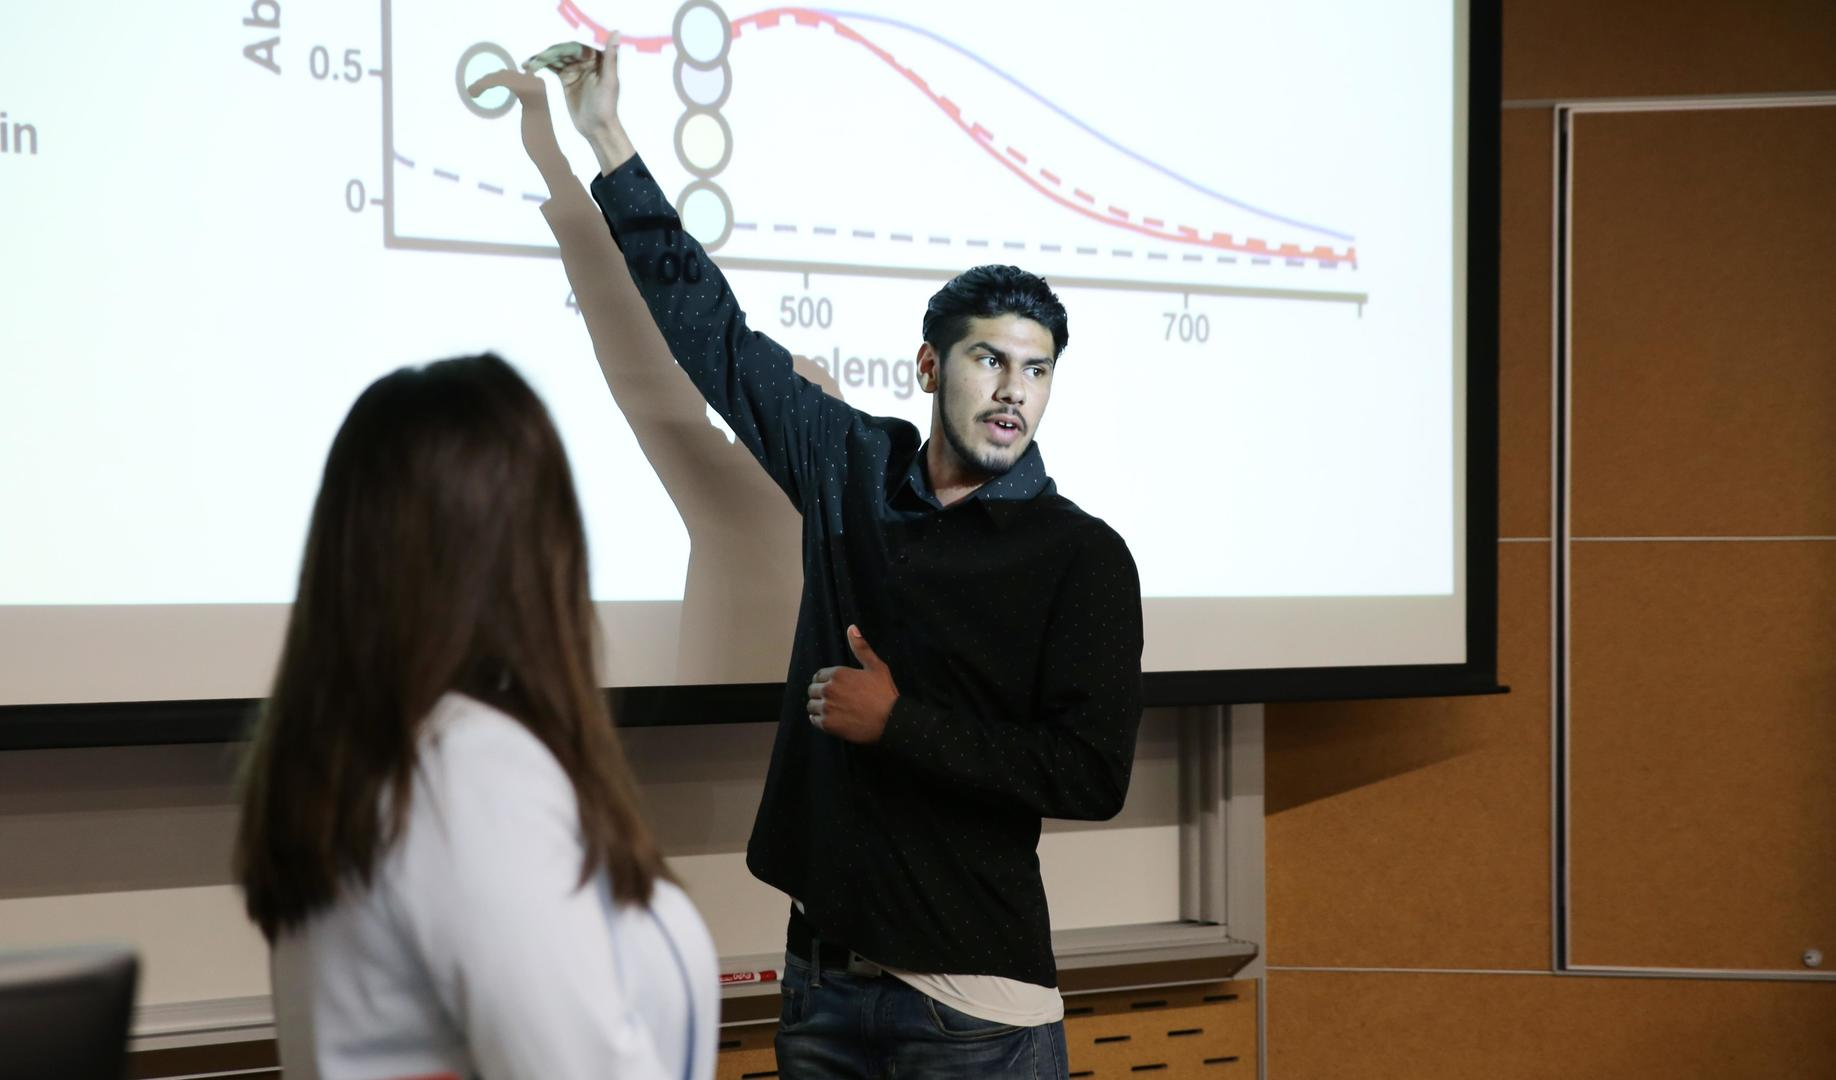 A person stands in front of a projection on a screen, pointing to a graph.